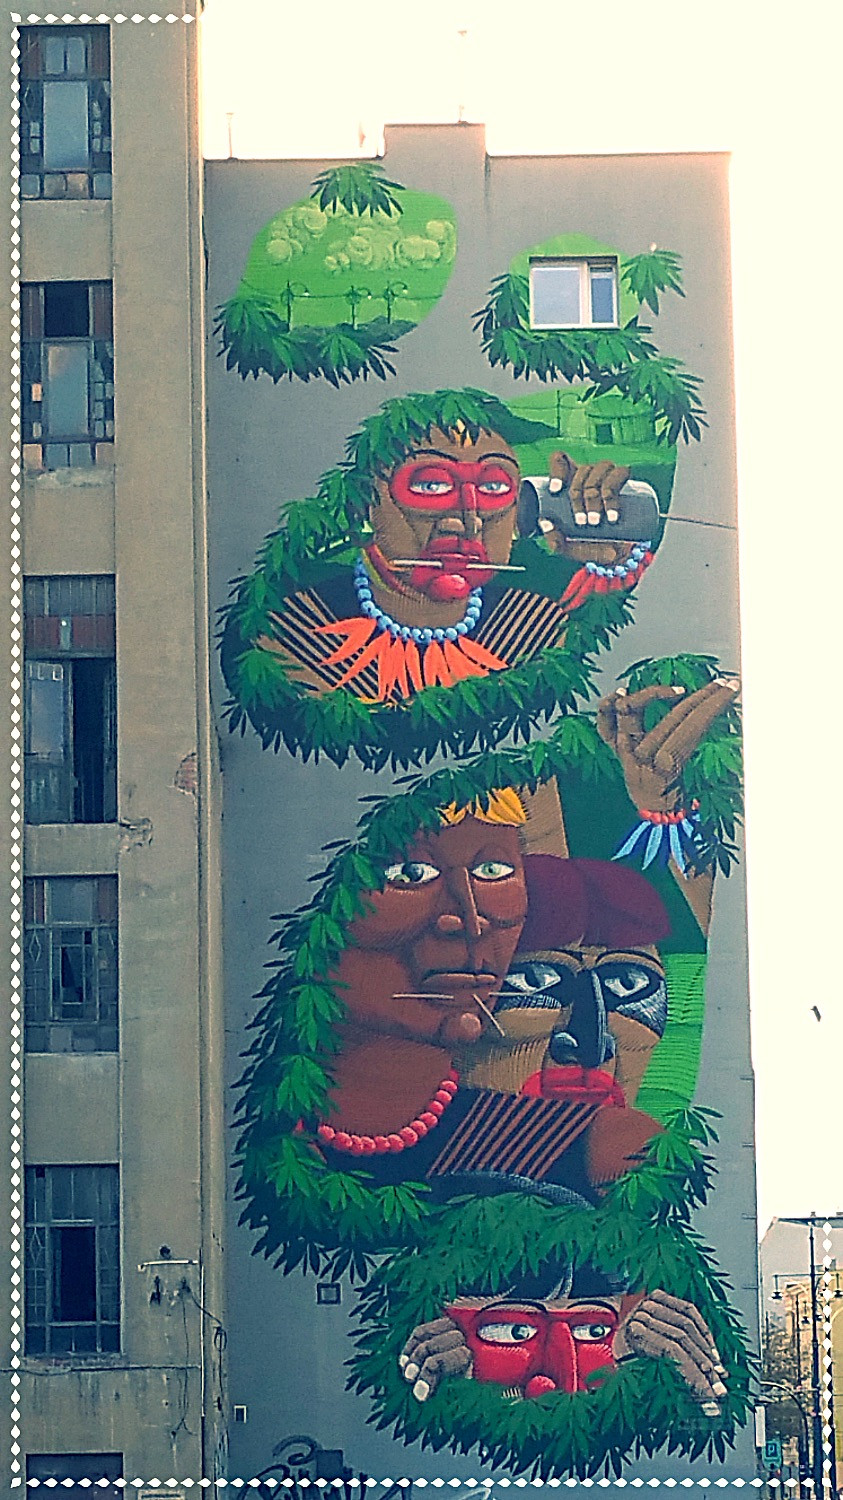 Polish Large Street Art - Indigenous